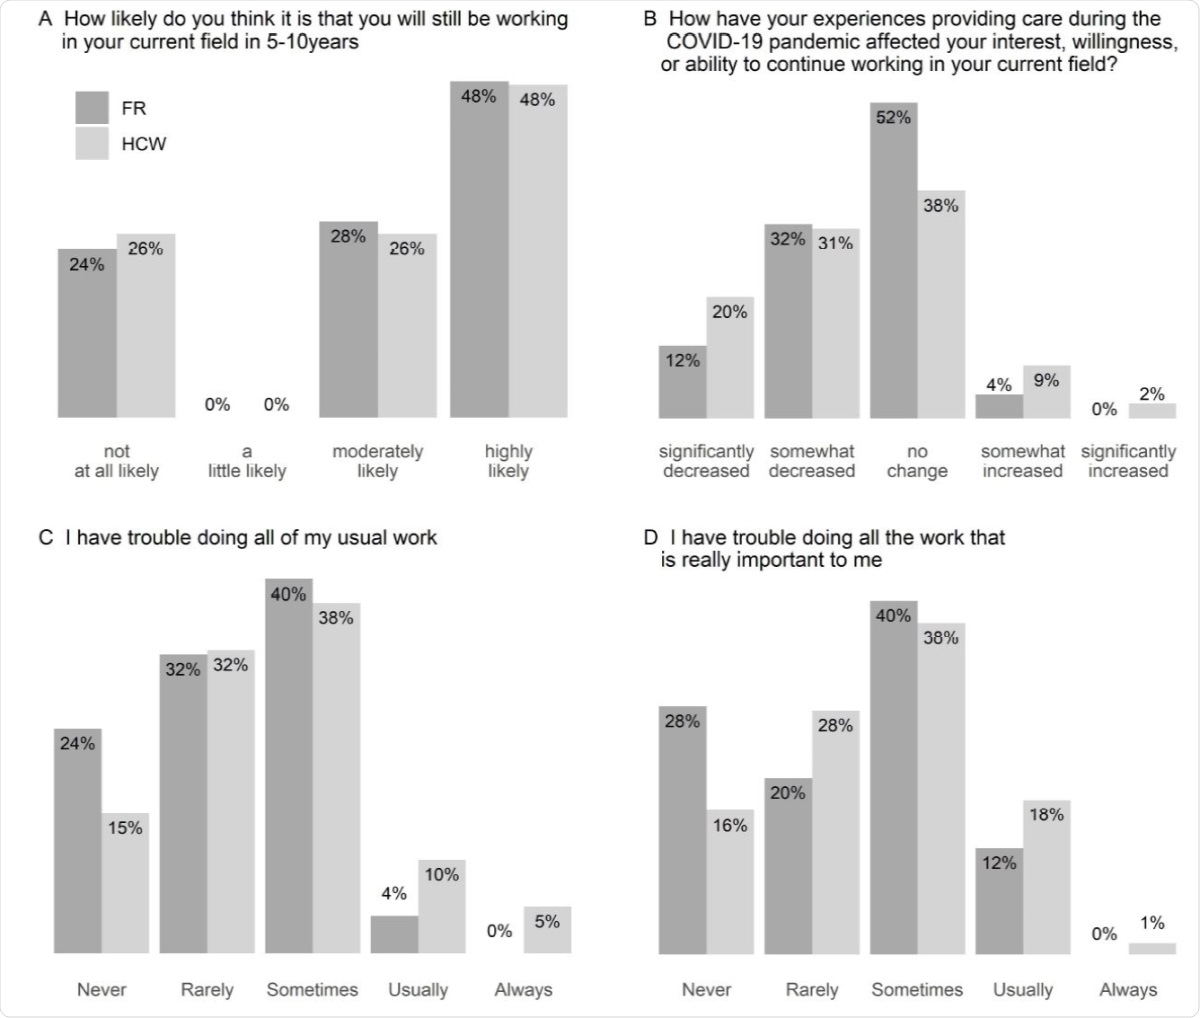 Distributions of responses to self-reported in field retention and functioning. Responses to questions about participants' expectations regarding continuing in their current field (A,B) and current function (C,D) for health care workers (HCW,